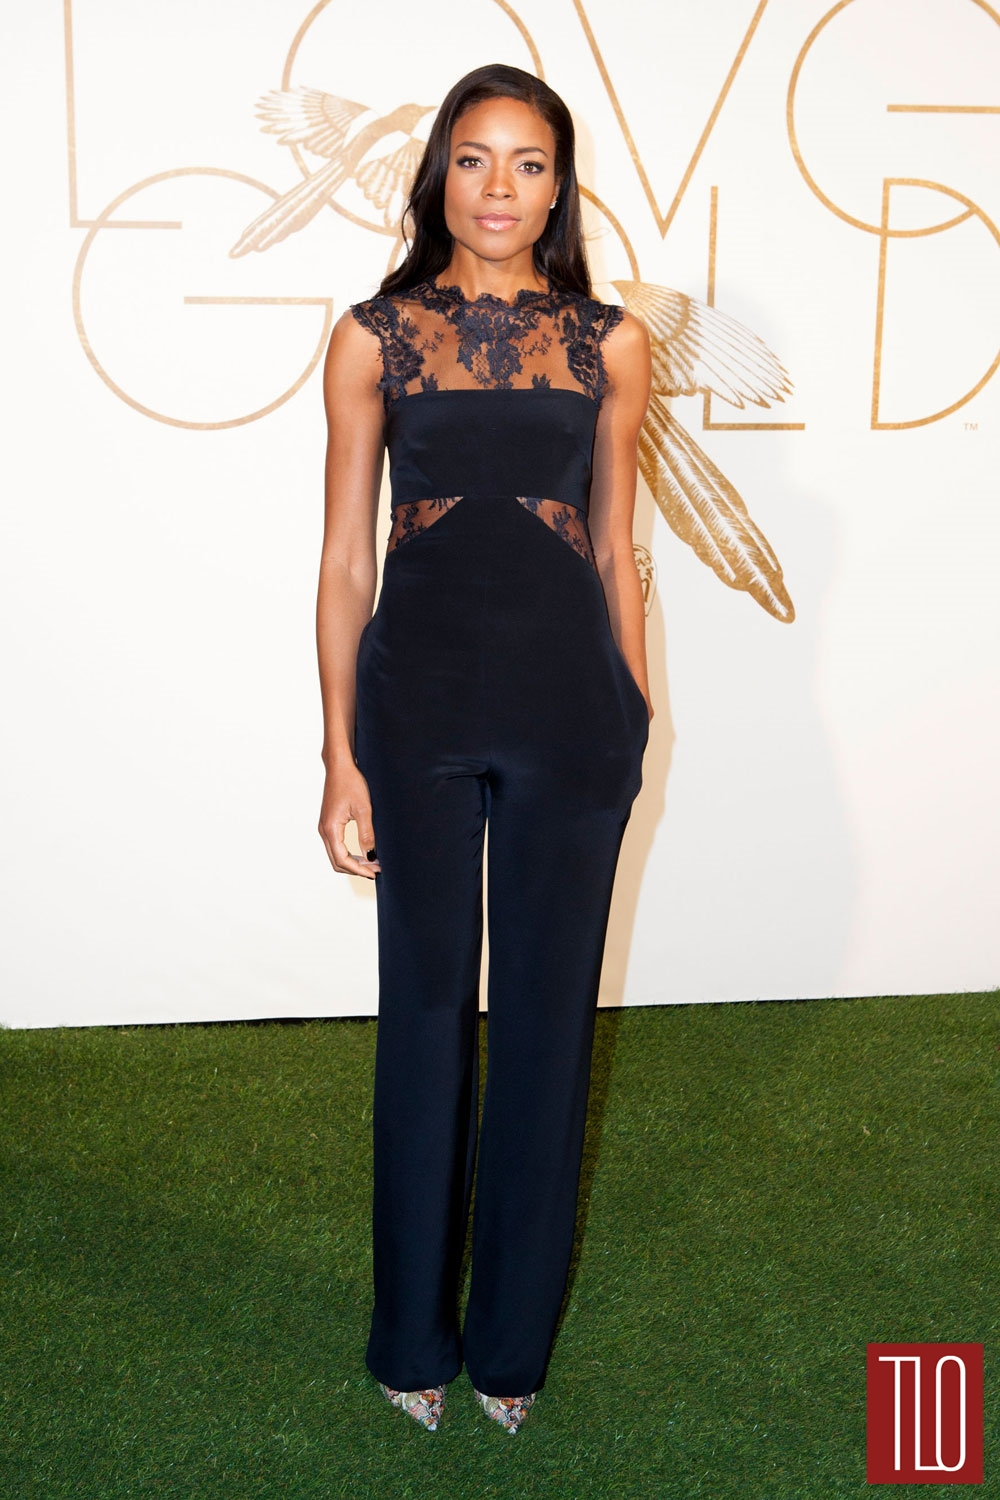 Naomie-Harris-Monique-Lhuillier-LoveGold-Event-Tom-Lorenzo-Site-TLO (1)